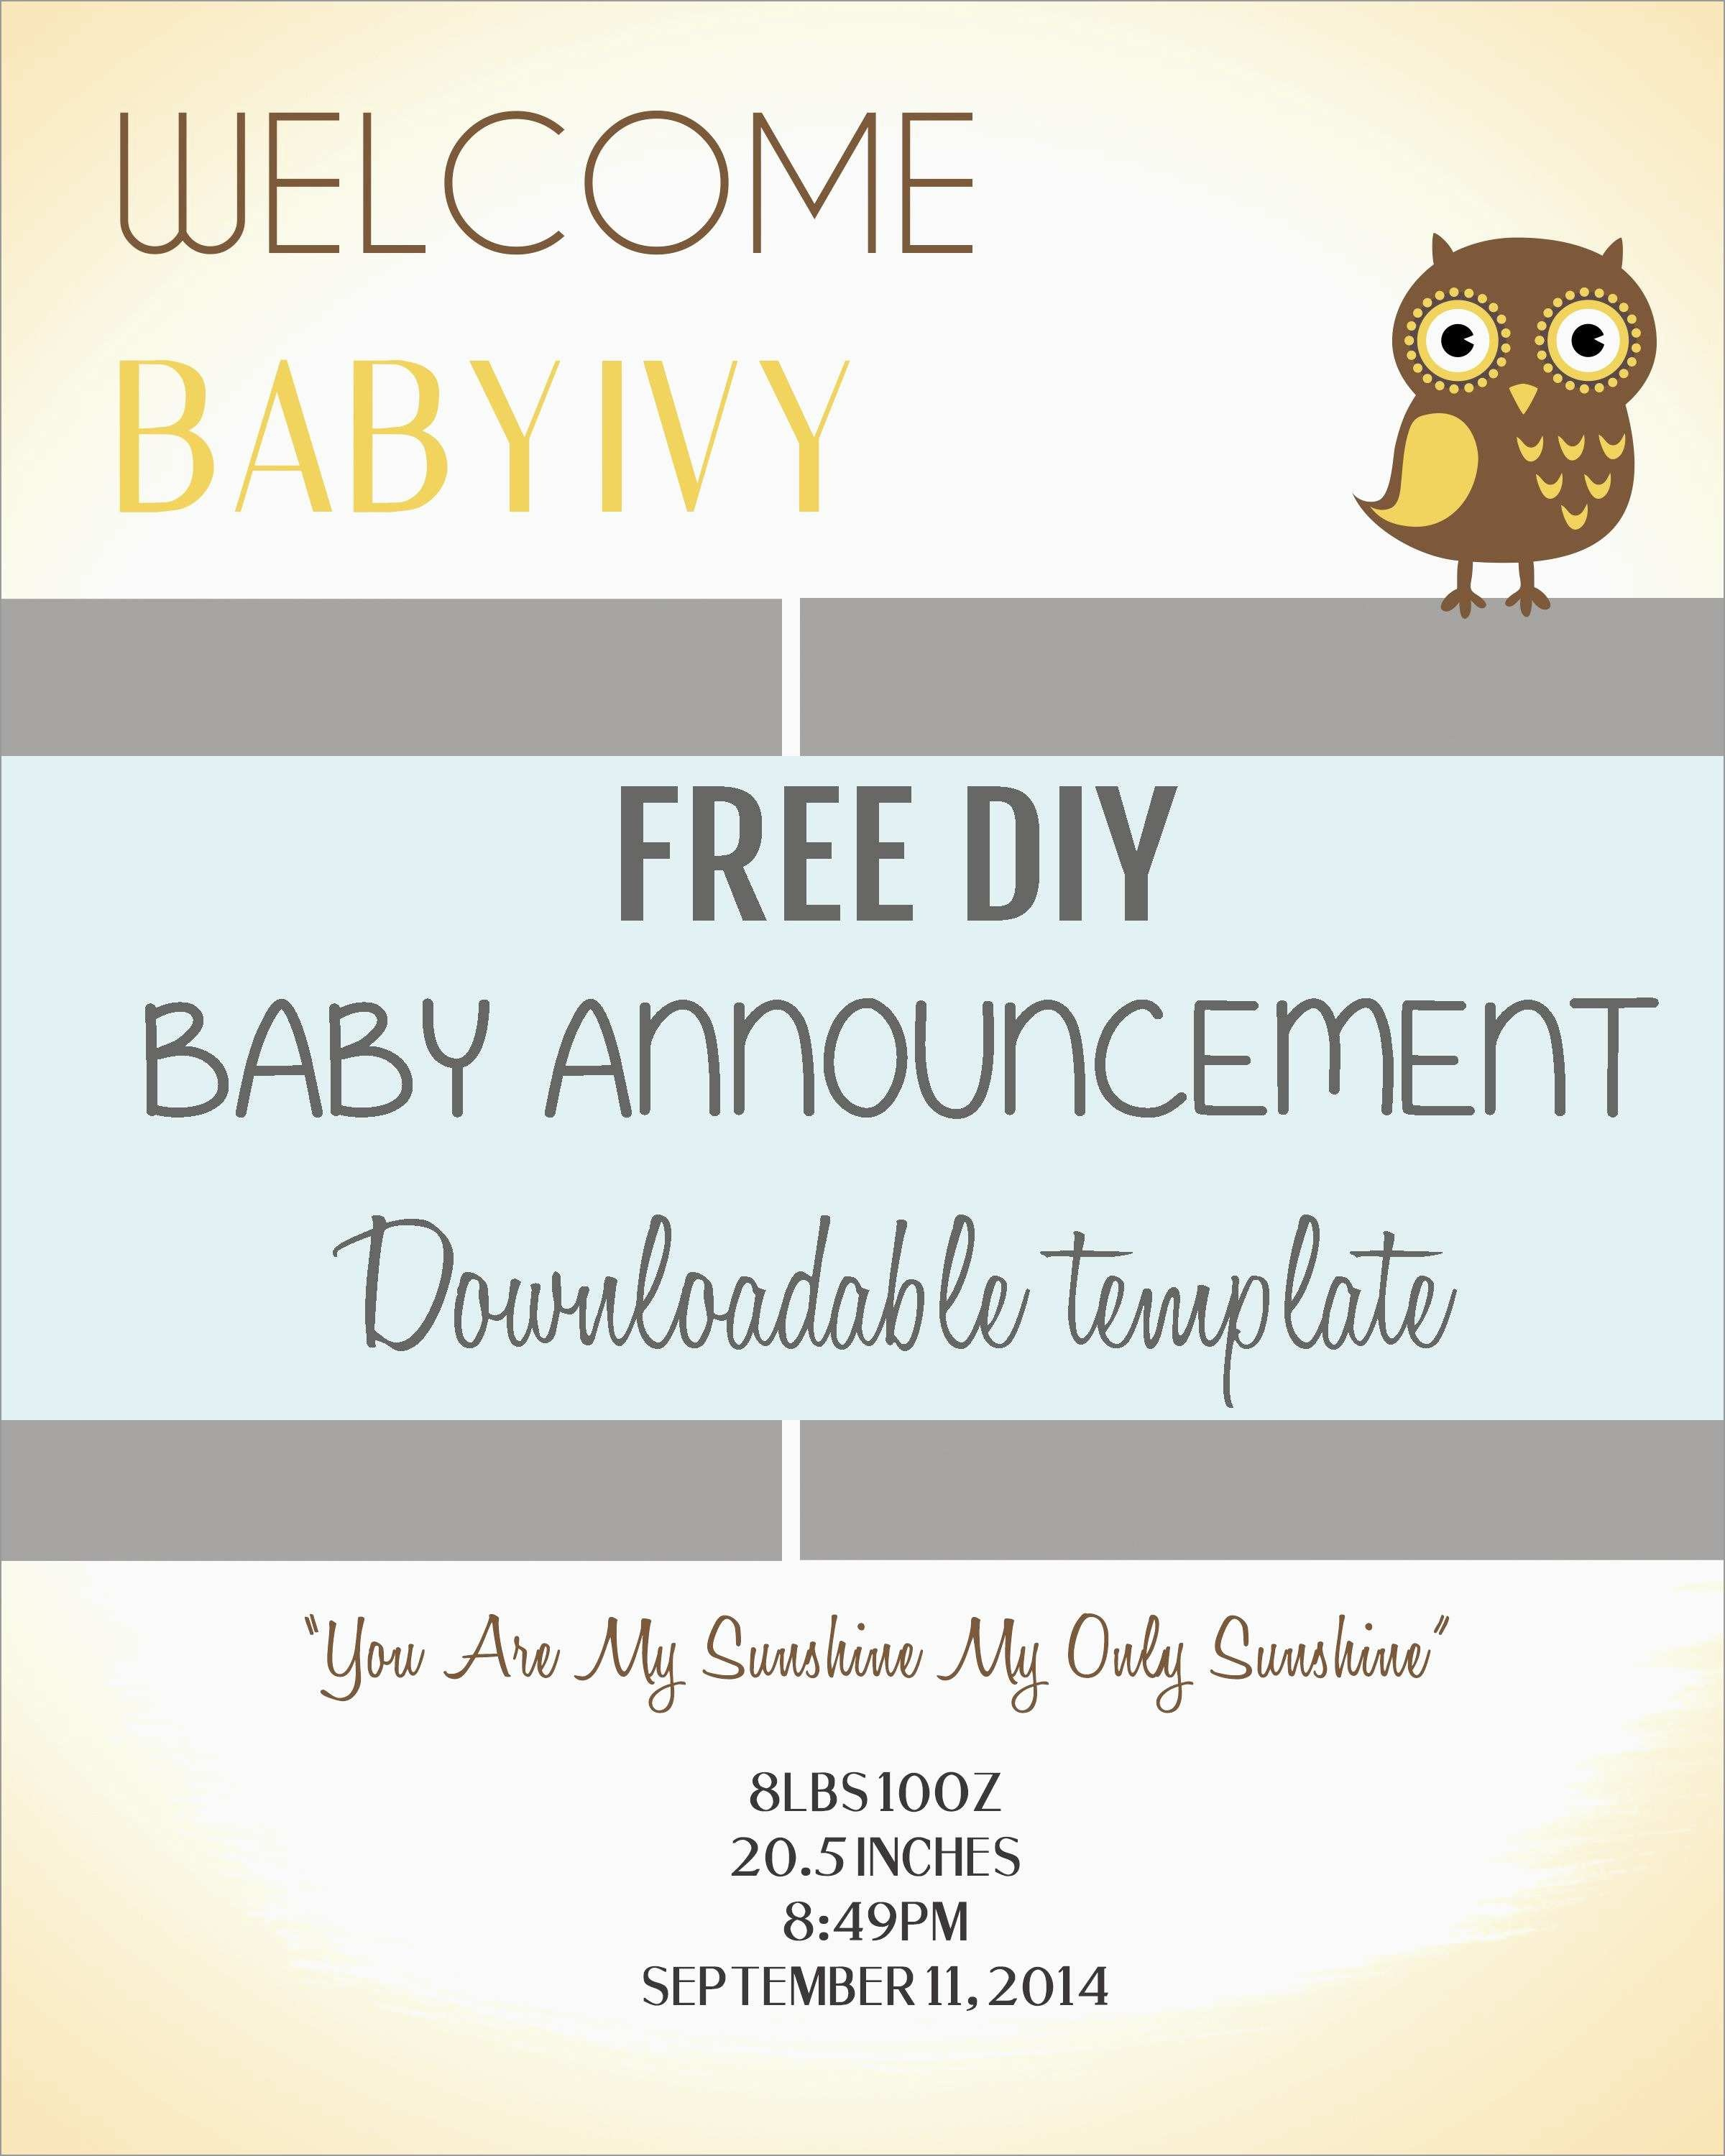 Luxury Birth Announcement Template Free Printable | Best Of Template - Free Printable Baby Announcement Templates